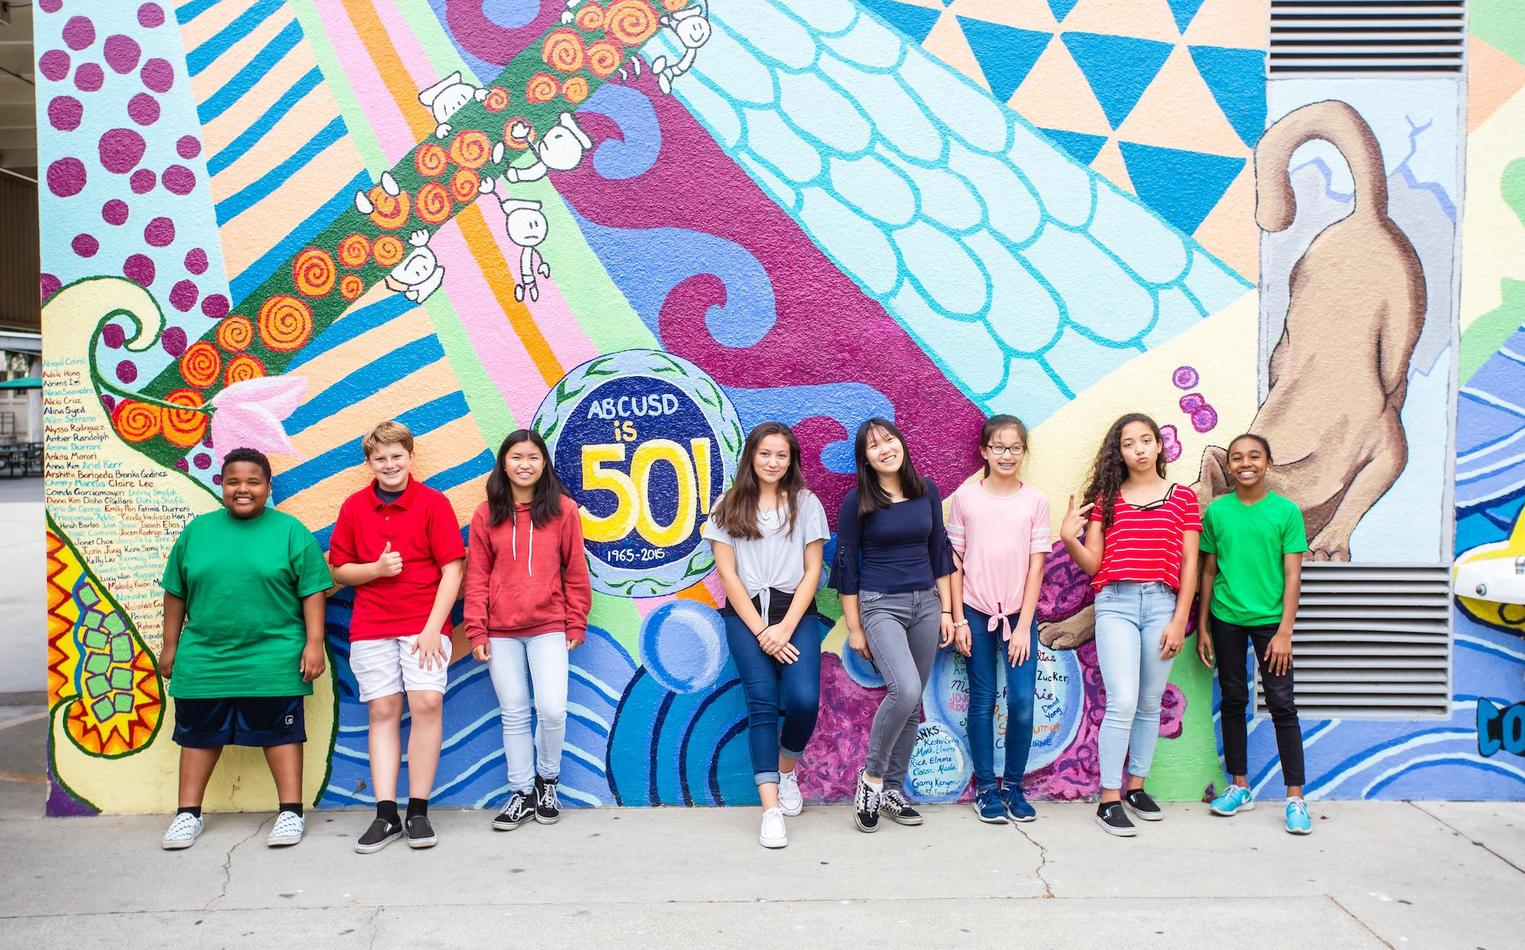 Students standing against colorful mural.